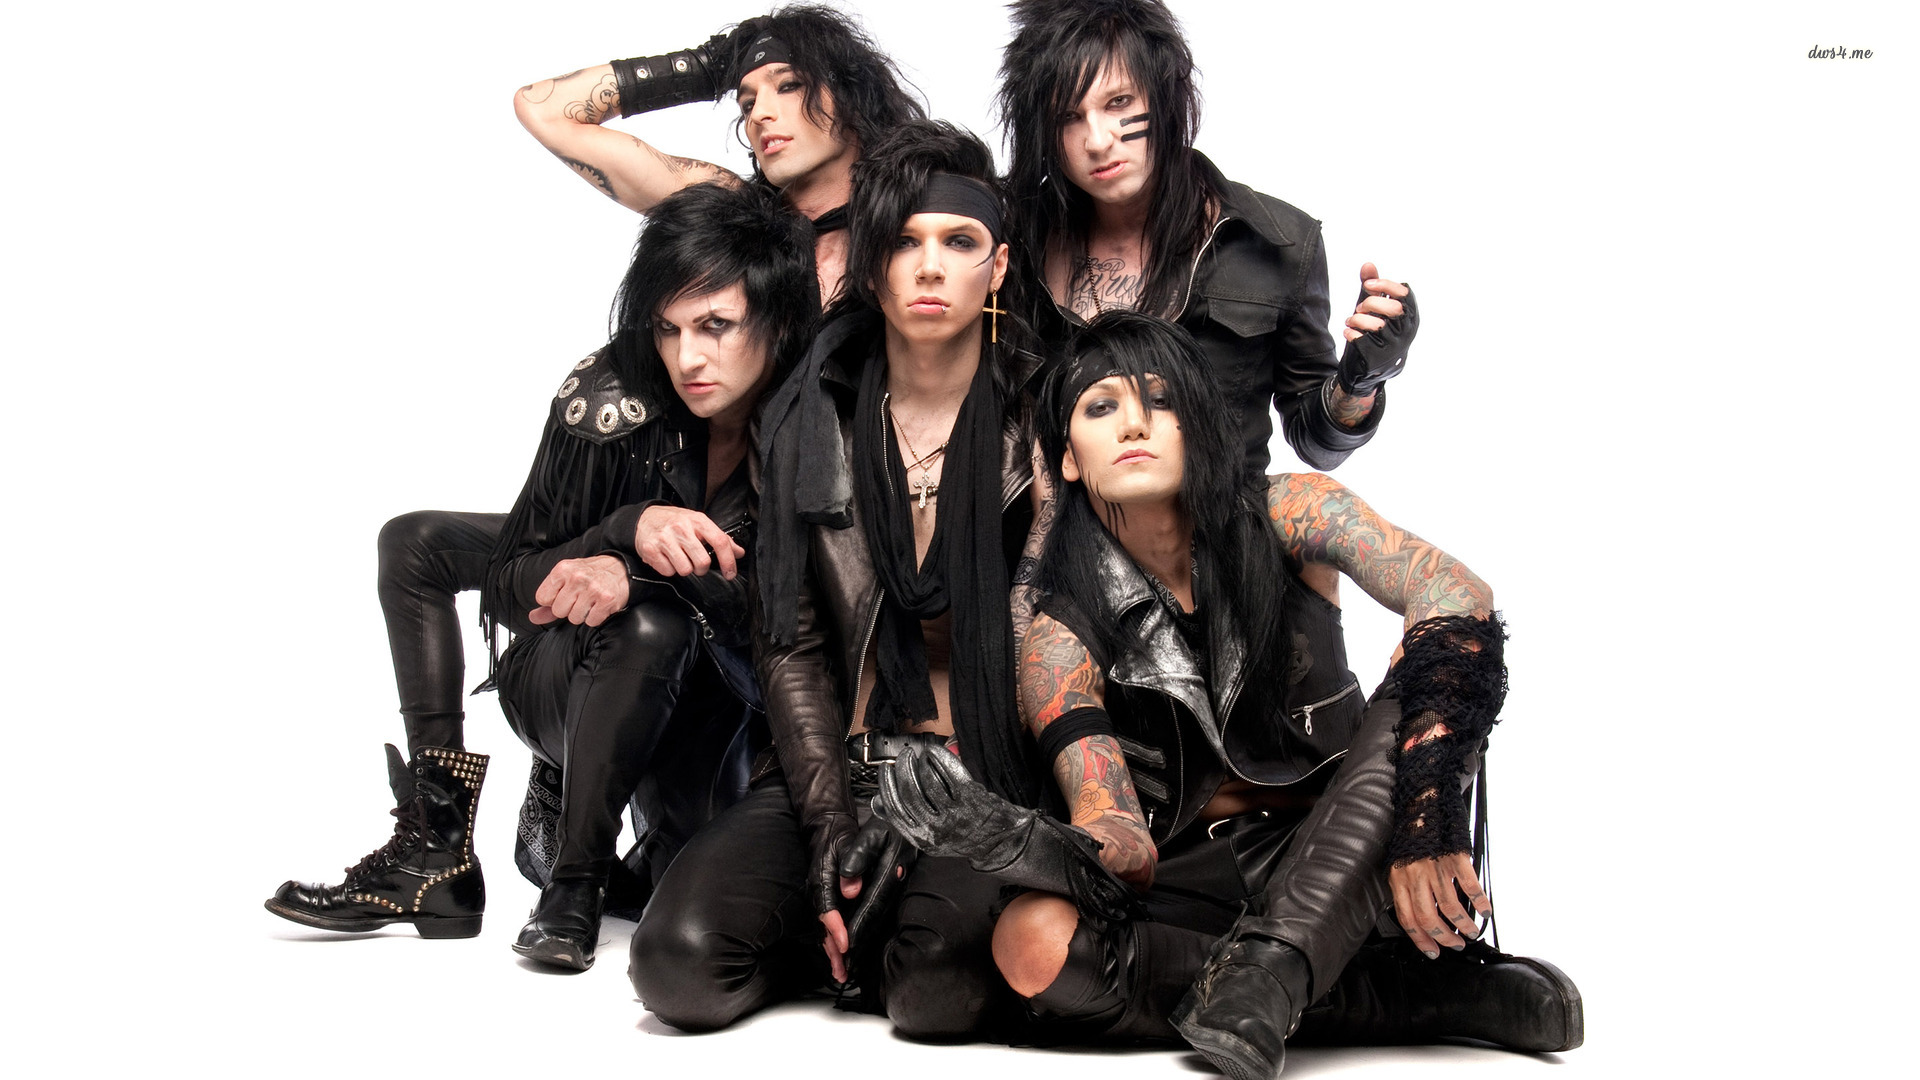 Black Veil Brides Wallpaper   Wallpapers High Definition 1920x1080